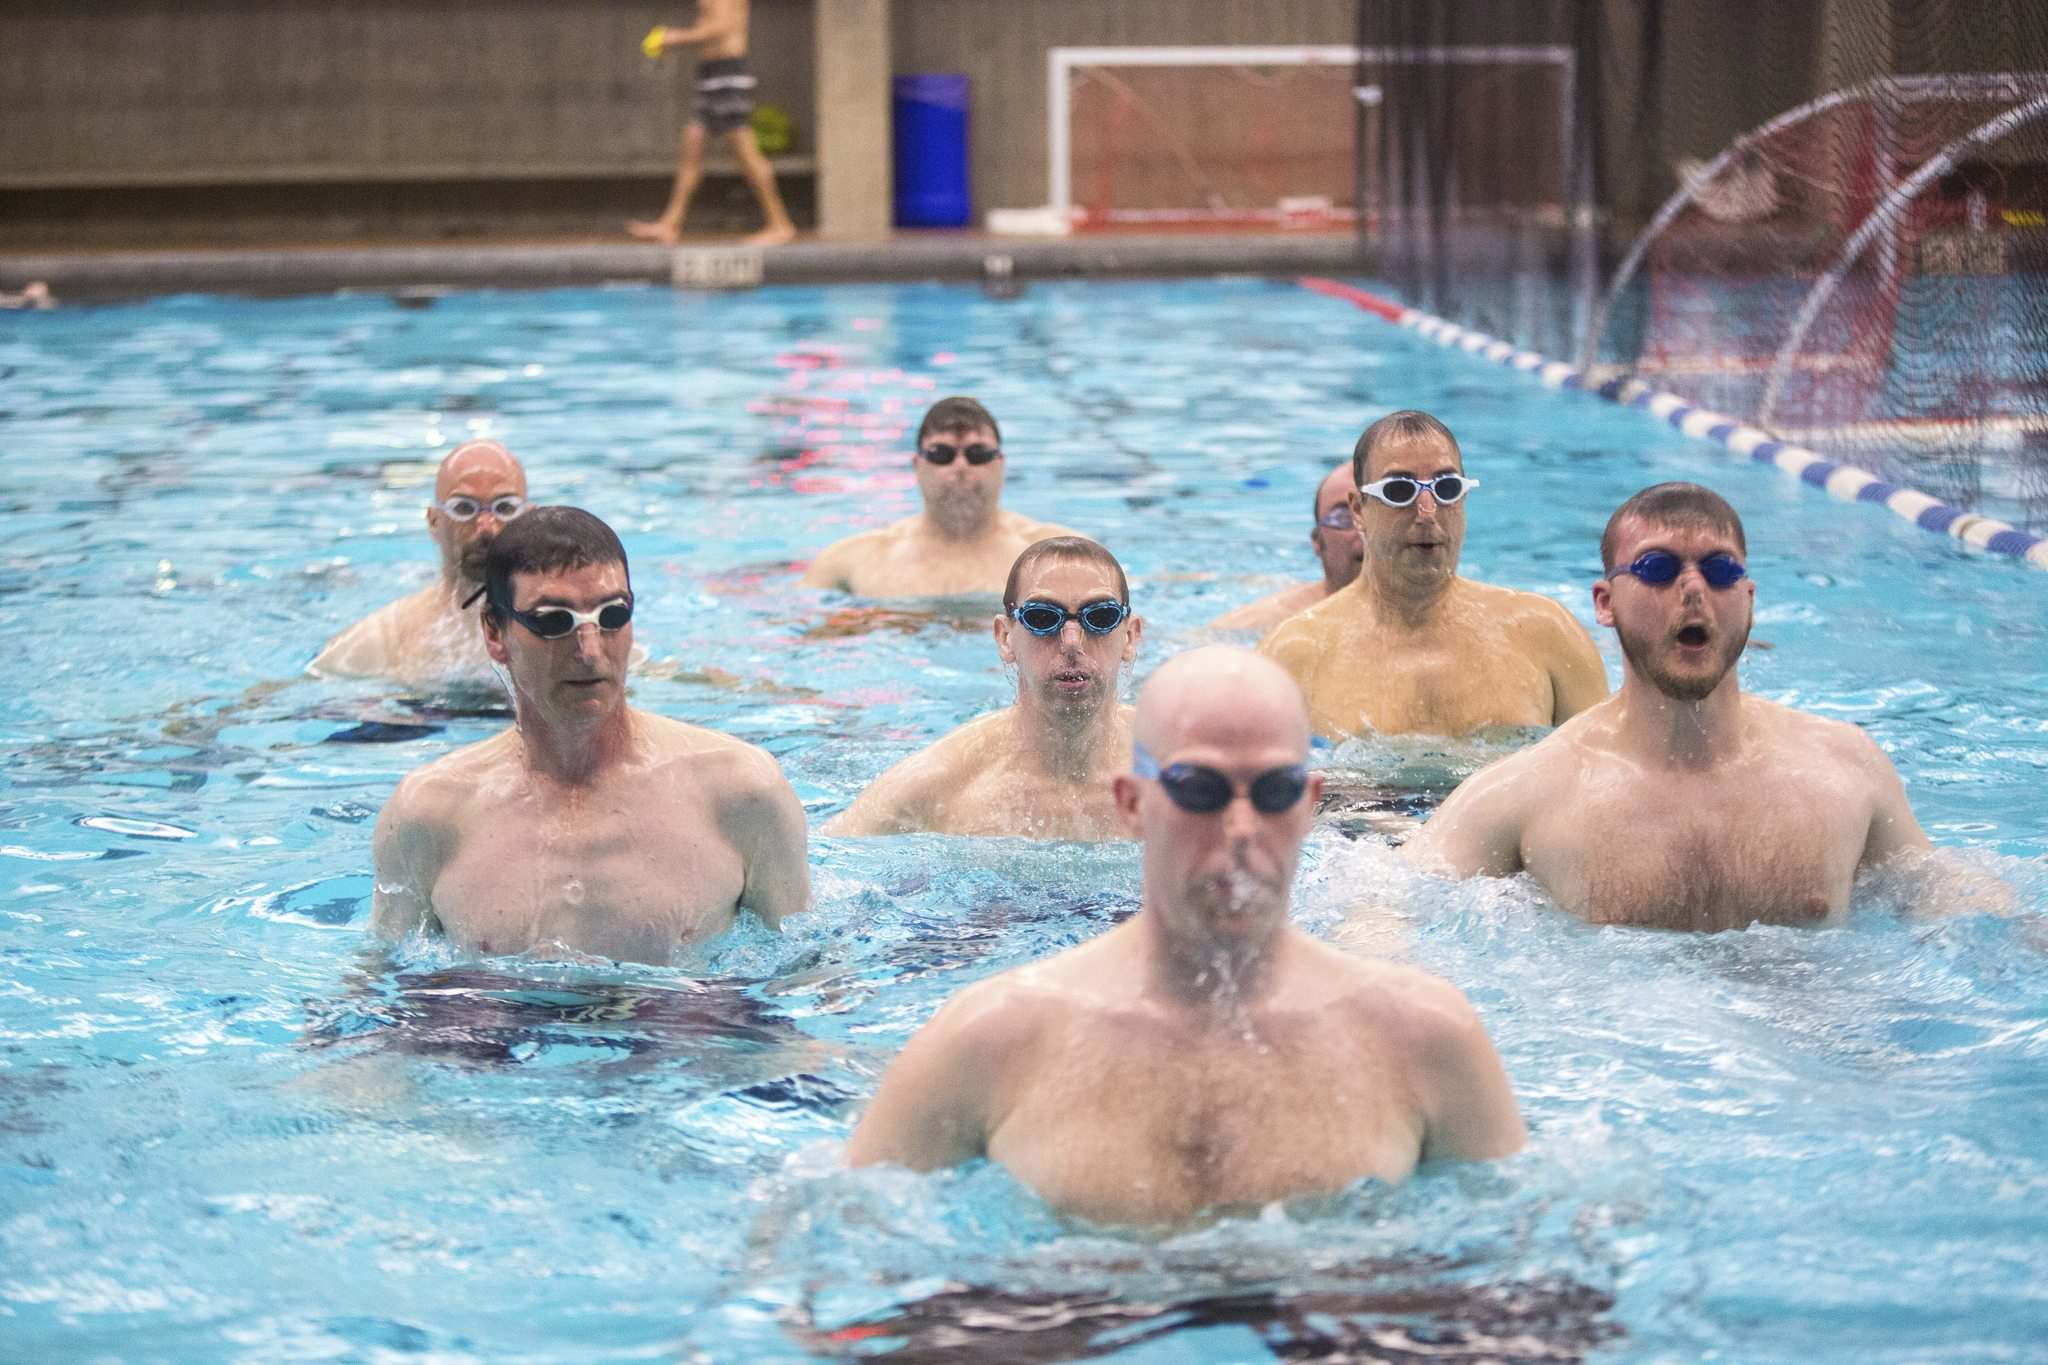 MIKAELA MACKENZIE / WINNIPEG FREE PRESS</p><p>Manitoba&rsquo;s first men&rsquo;s synchronized swimming team practises at the Pan Am Pool on Saturday. The team will showcase its newly found skills at a May 25th fundraiser.</p></p>